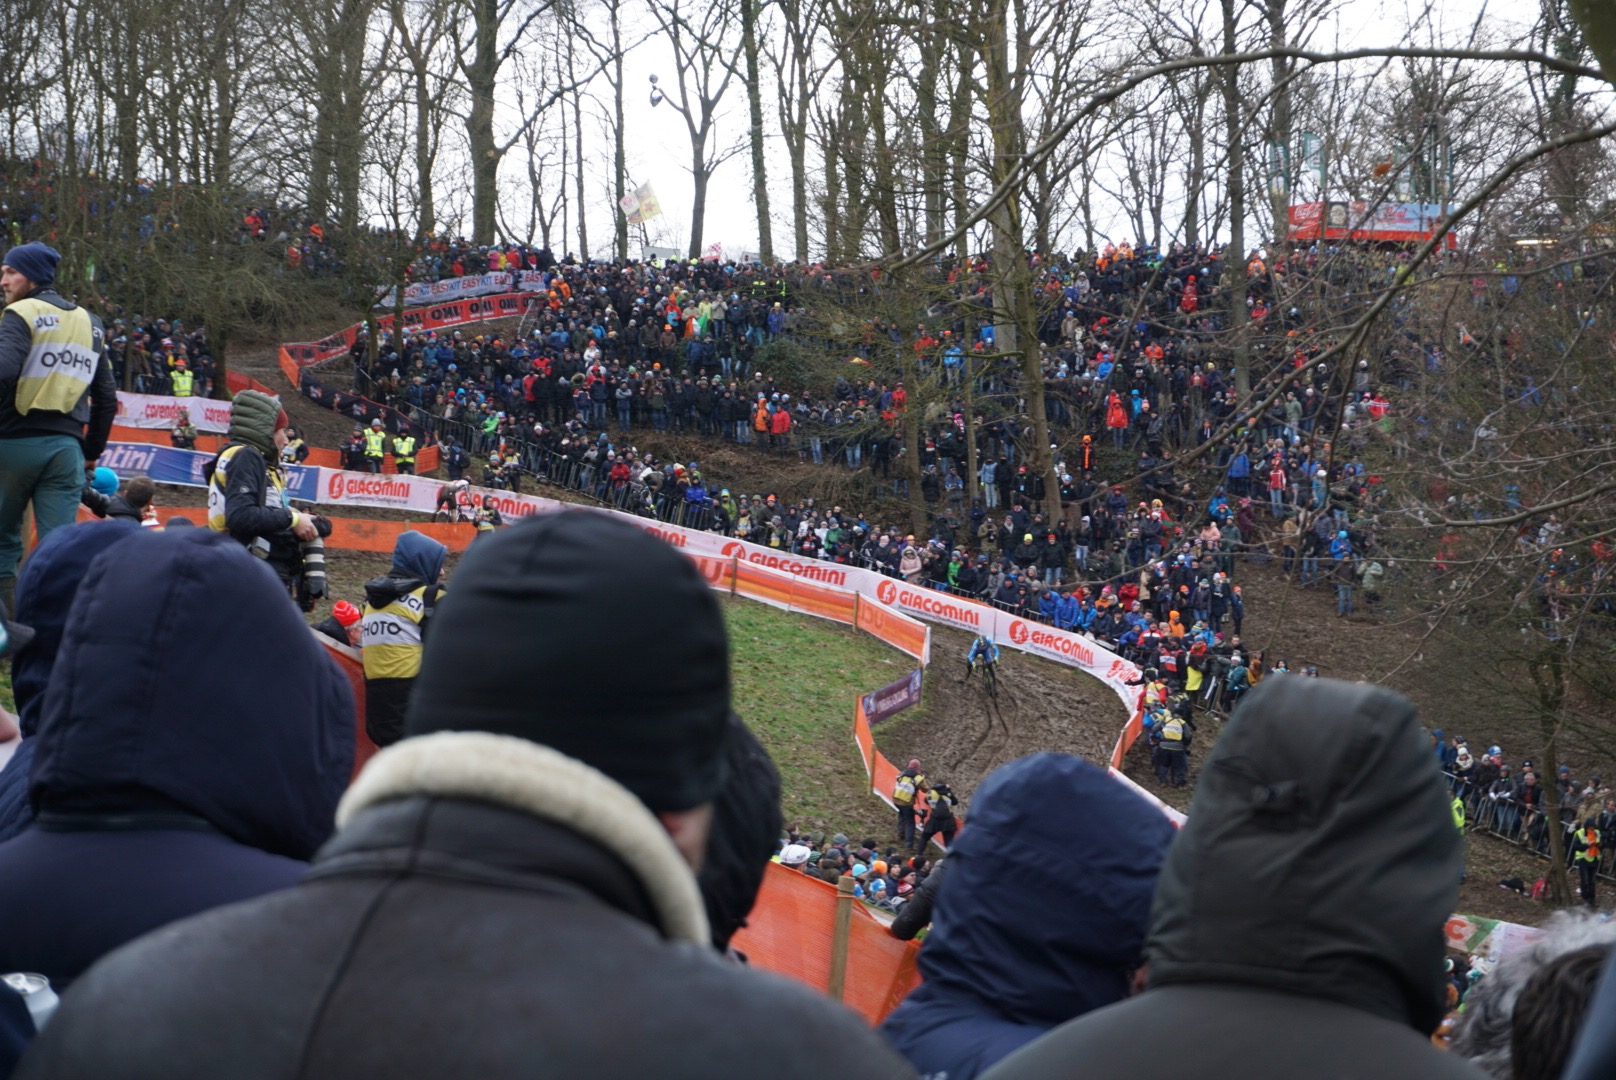 Always mind blowing to see the amount of people attending the Euro cross races. It was fun to get to watch the mens race with friends and family.